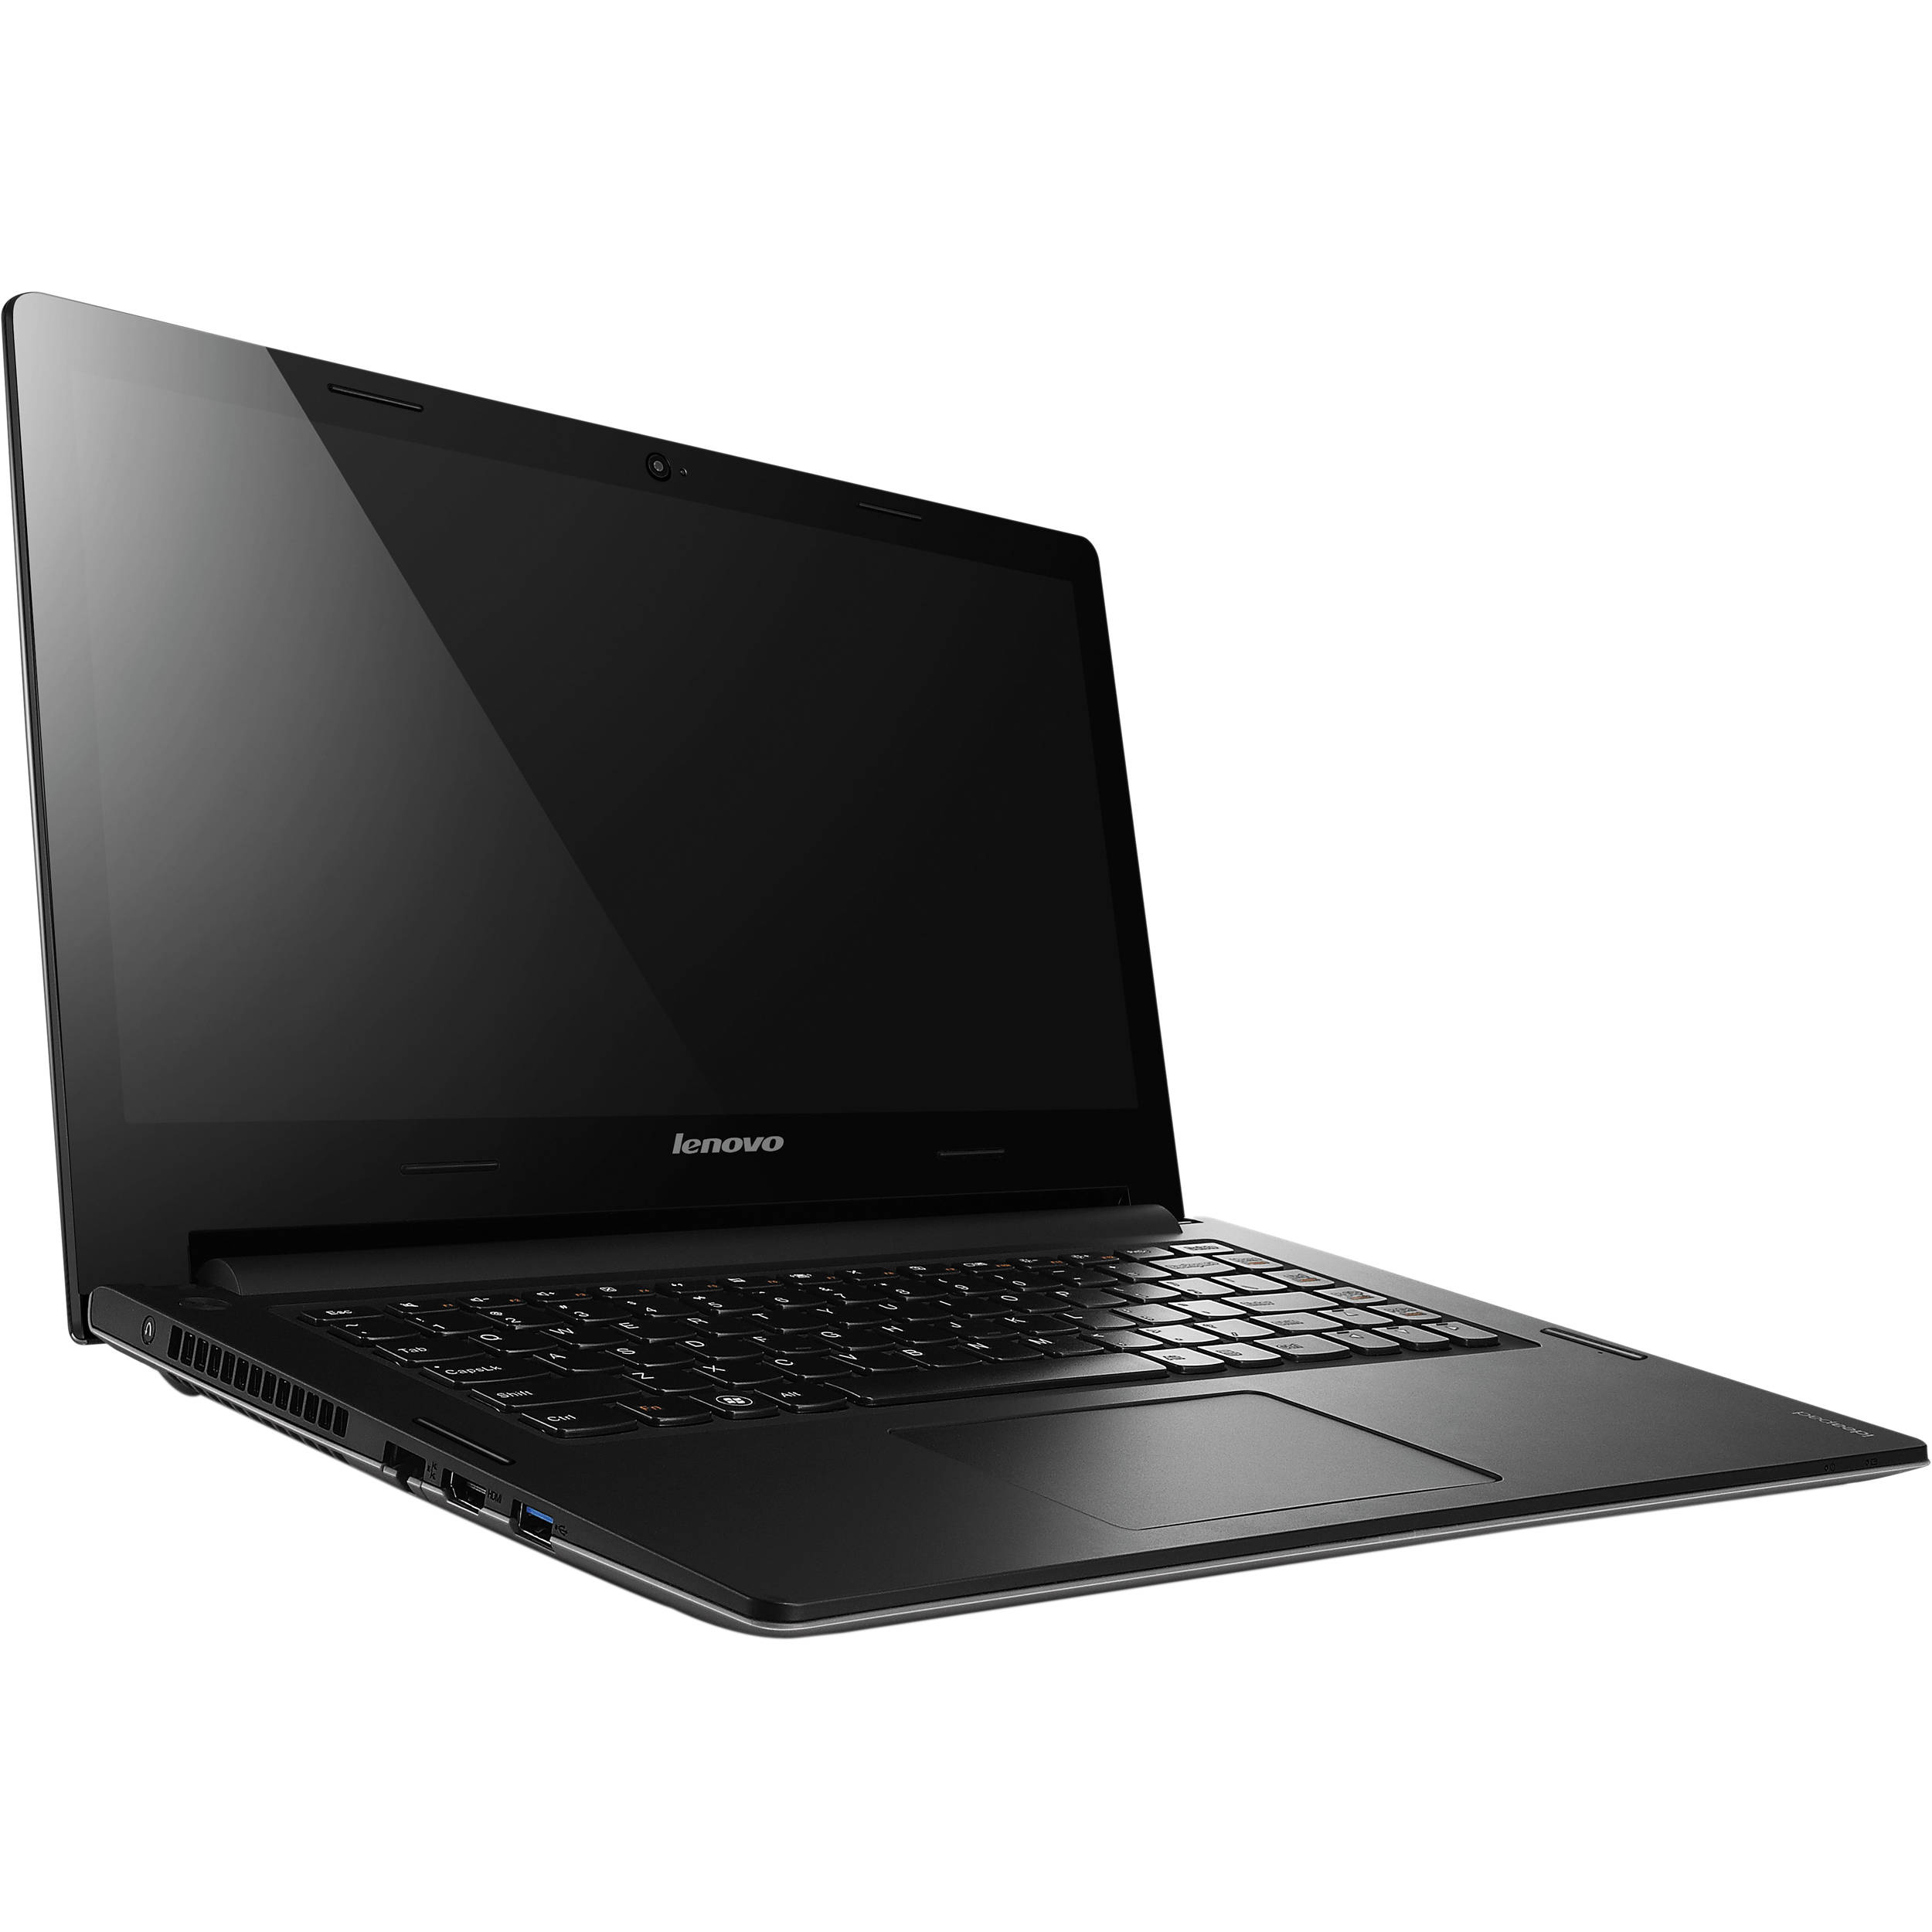 Lenovo IdeaPad S400 Touch AMD Graphics Drivers for Windows Mac